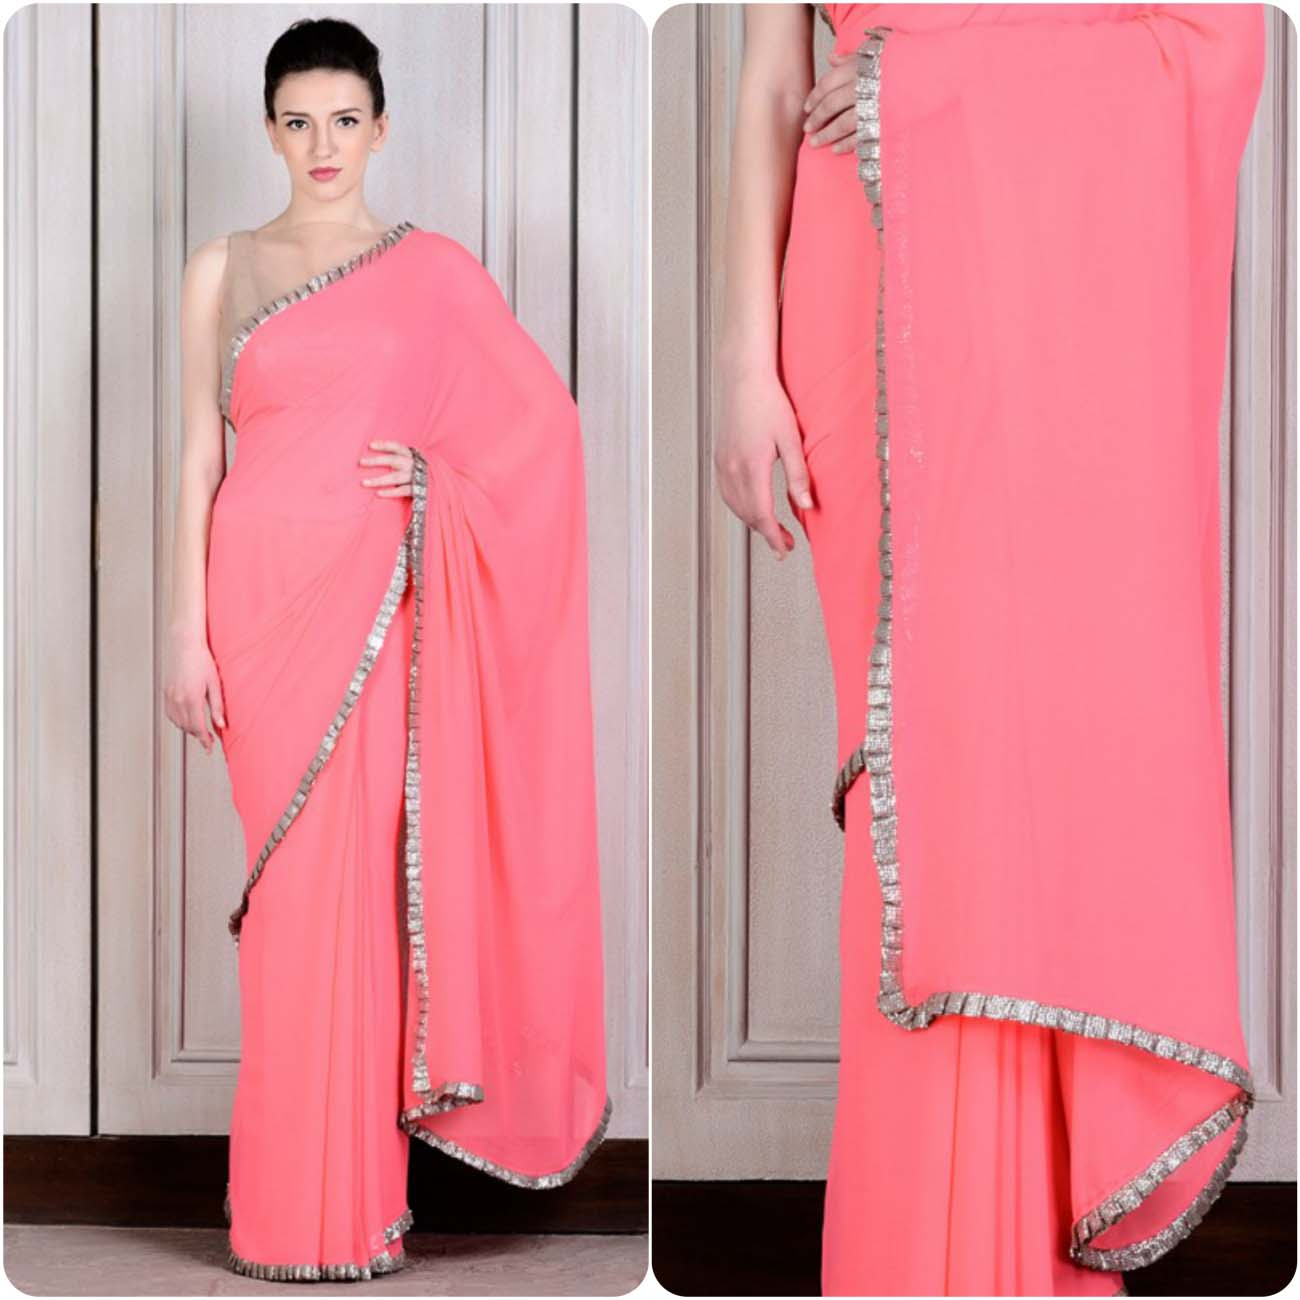 Manish Malhotra Designers Saree Collection 2016-2017...styloplanet (20)